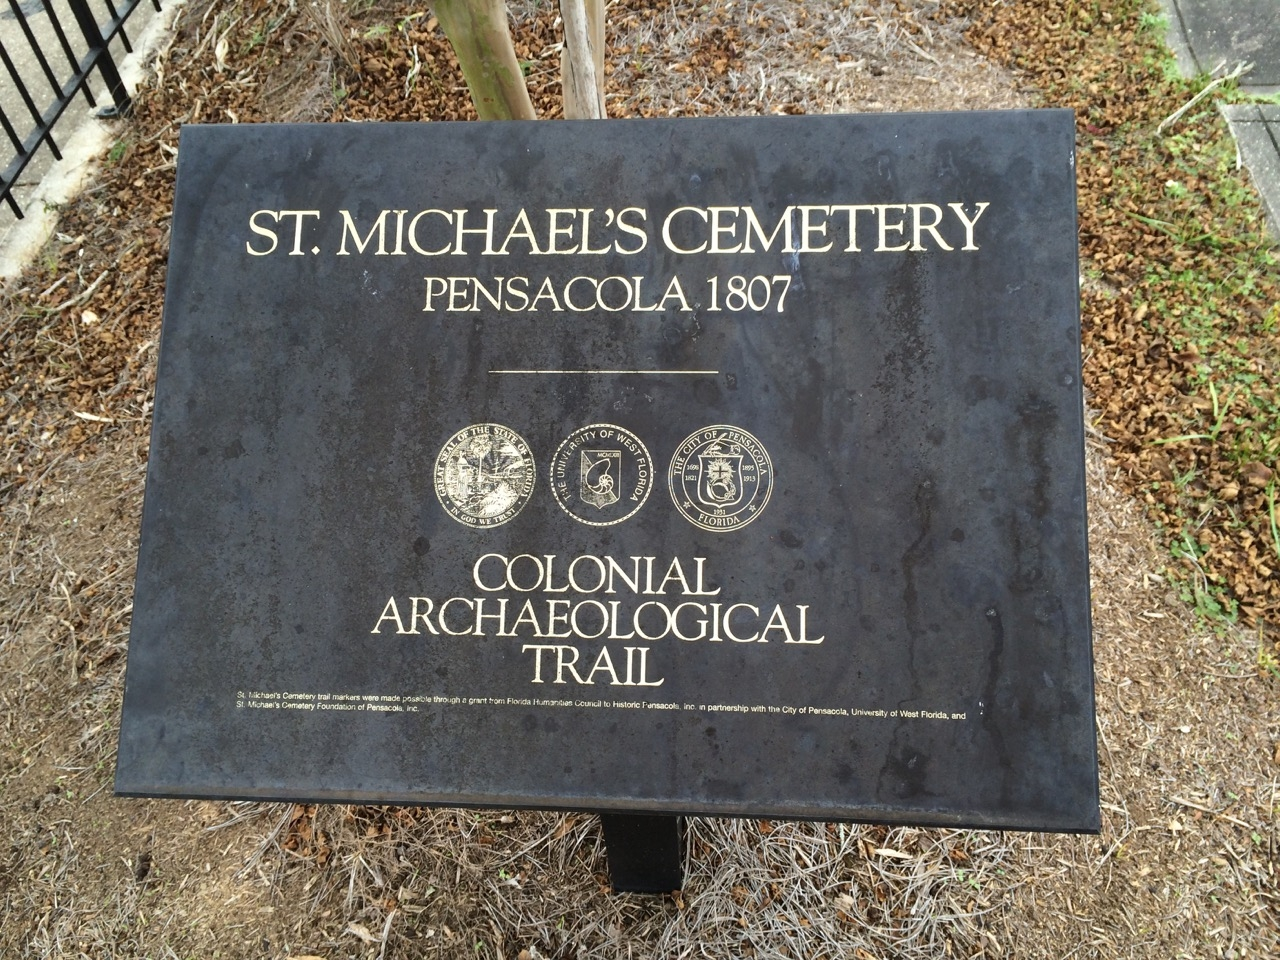 Colonial Archaeological Trail - St. Michael